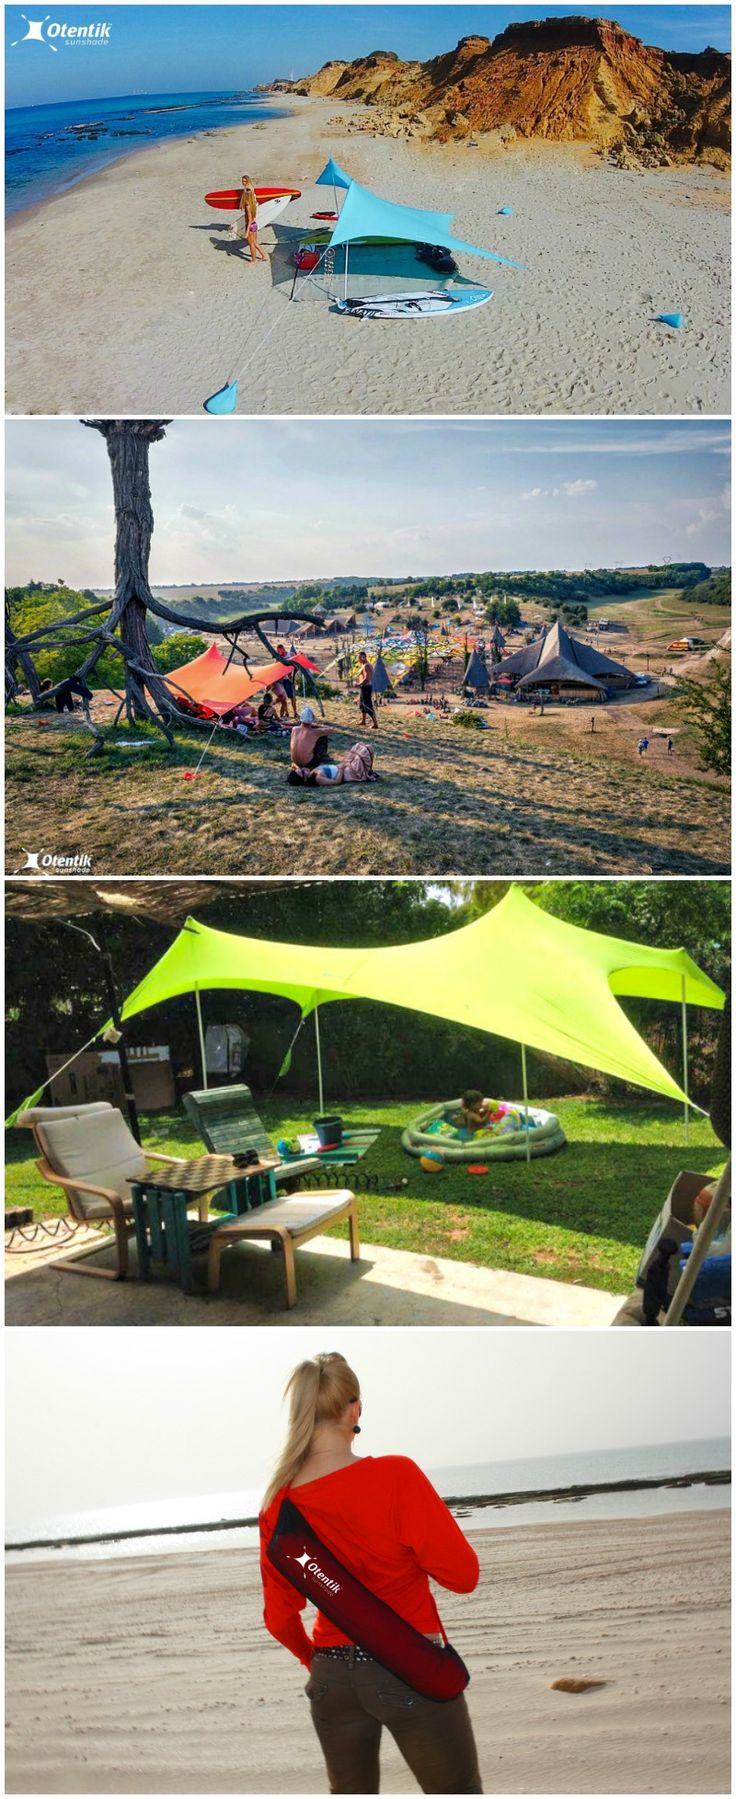 The wind and sand resistant Otentik Sunshade is the easy and convenient to set up beach tent that uses sandbags instead of stakes.